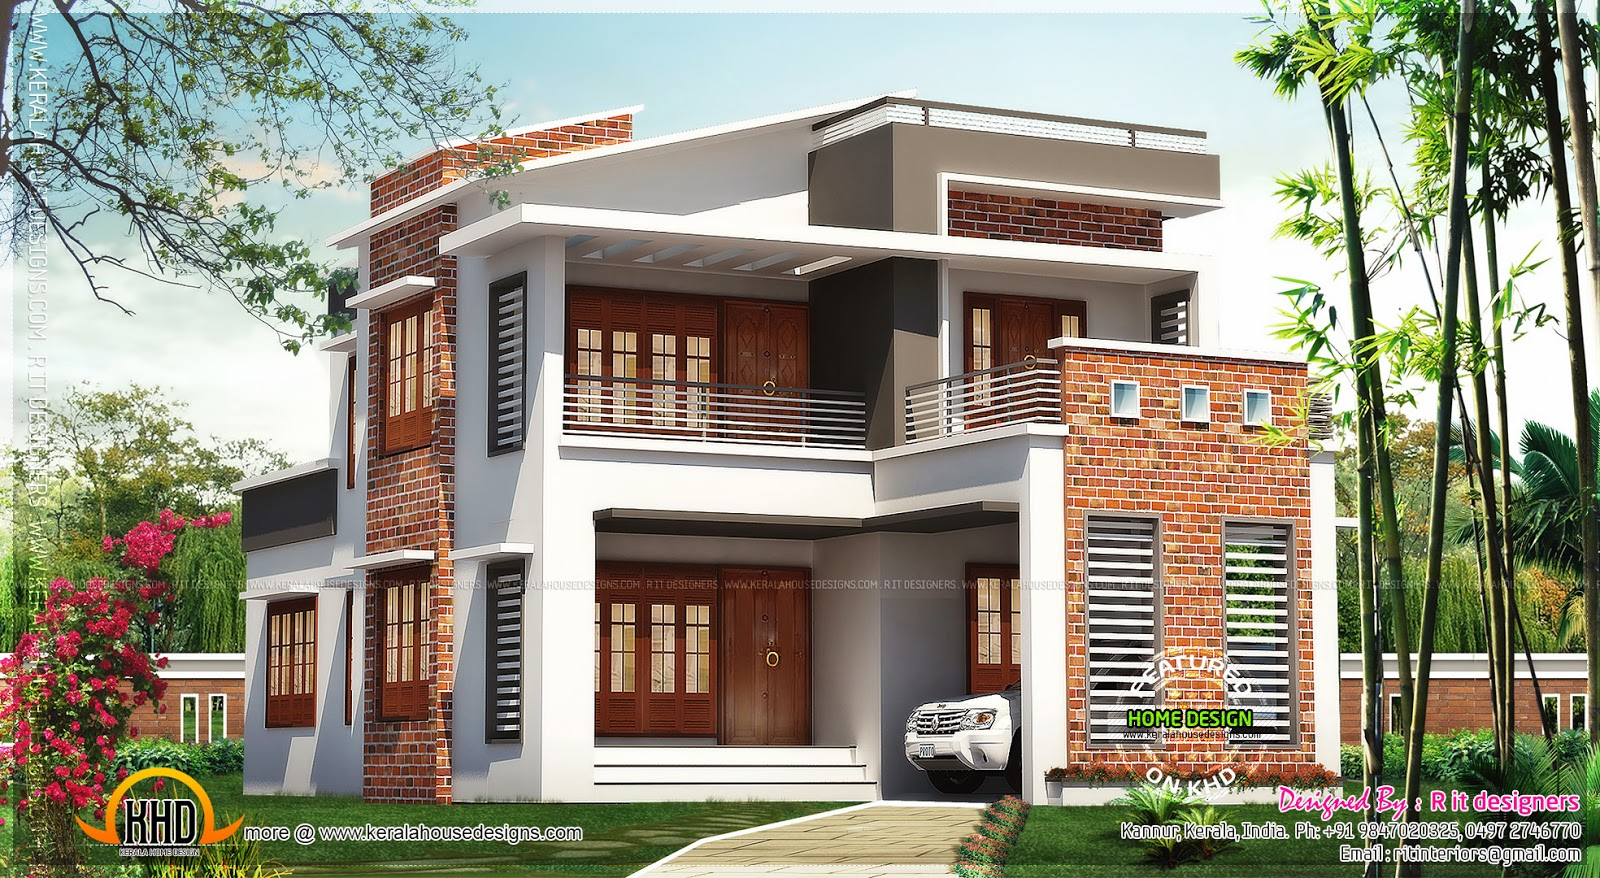 Brick mix house exterior design kerala home design and for Front design of small house